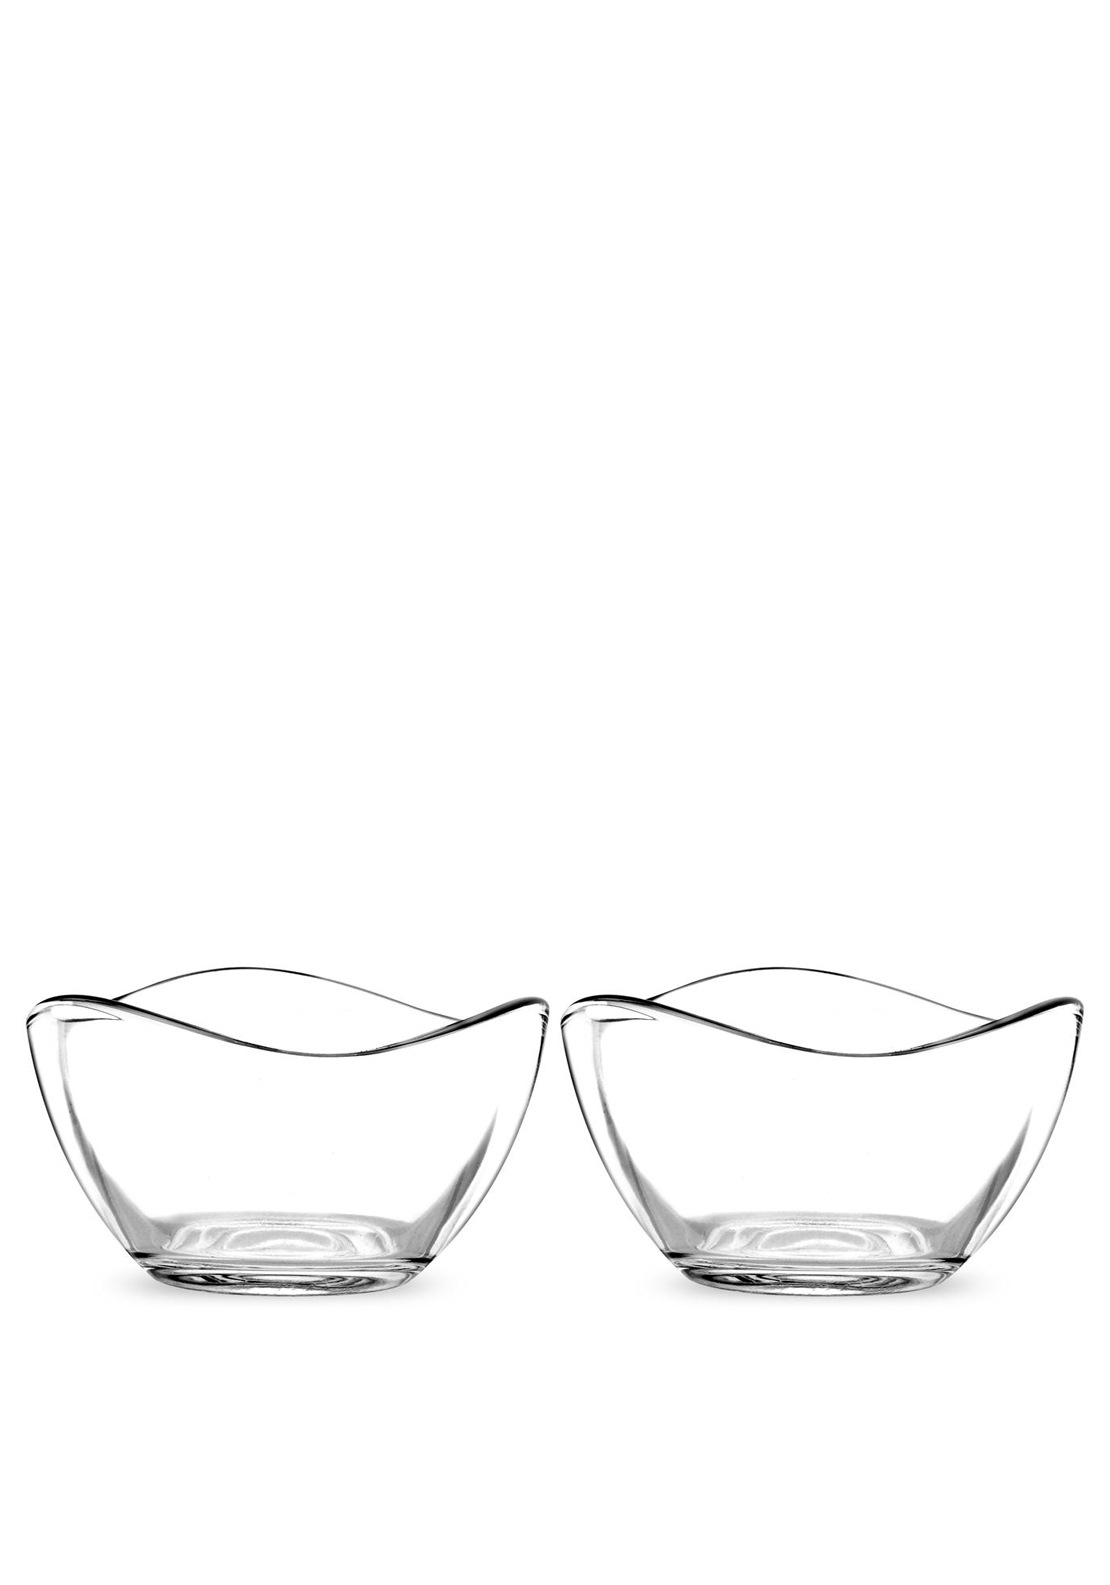 Portmeirion Set of Two Small Glass Bowls, Clear Glass